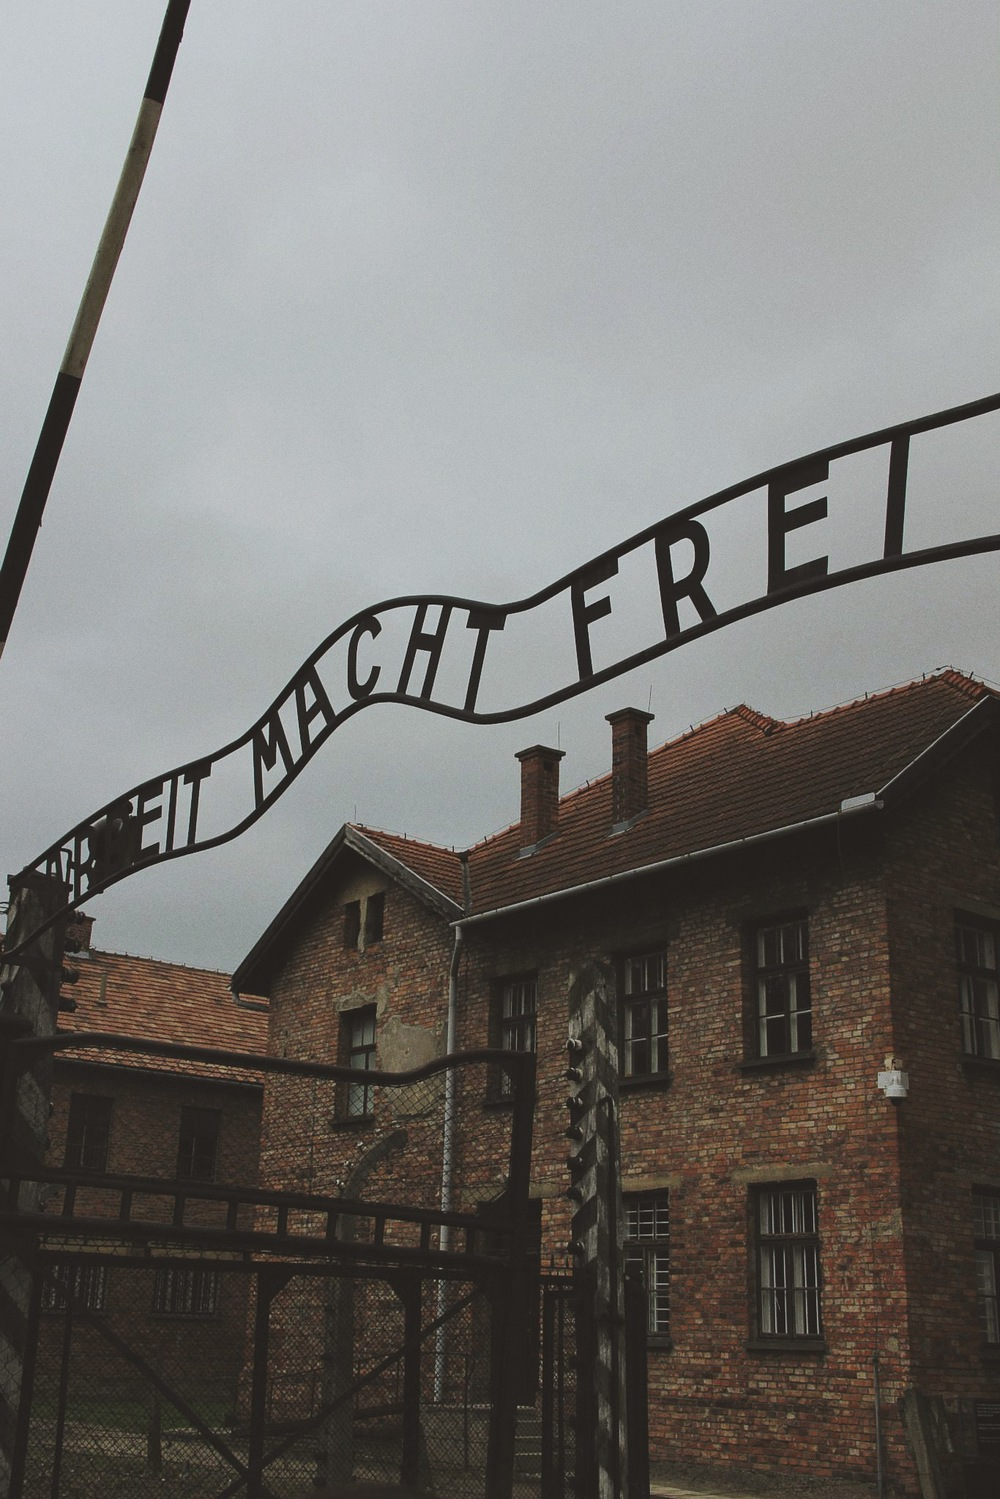 """Arcbeit Macht Frei"" (Works Makes You Free) gates at the entrance to Auschwitz, 2013"